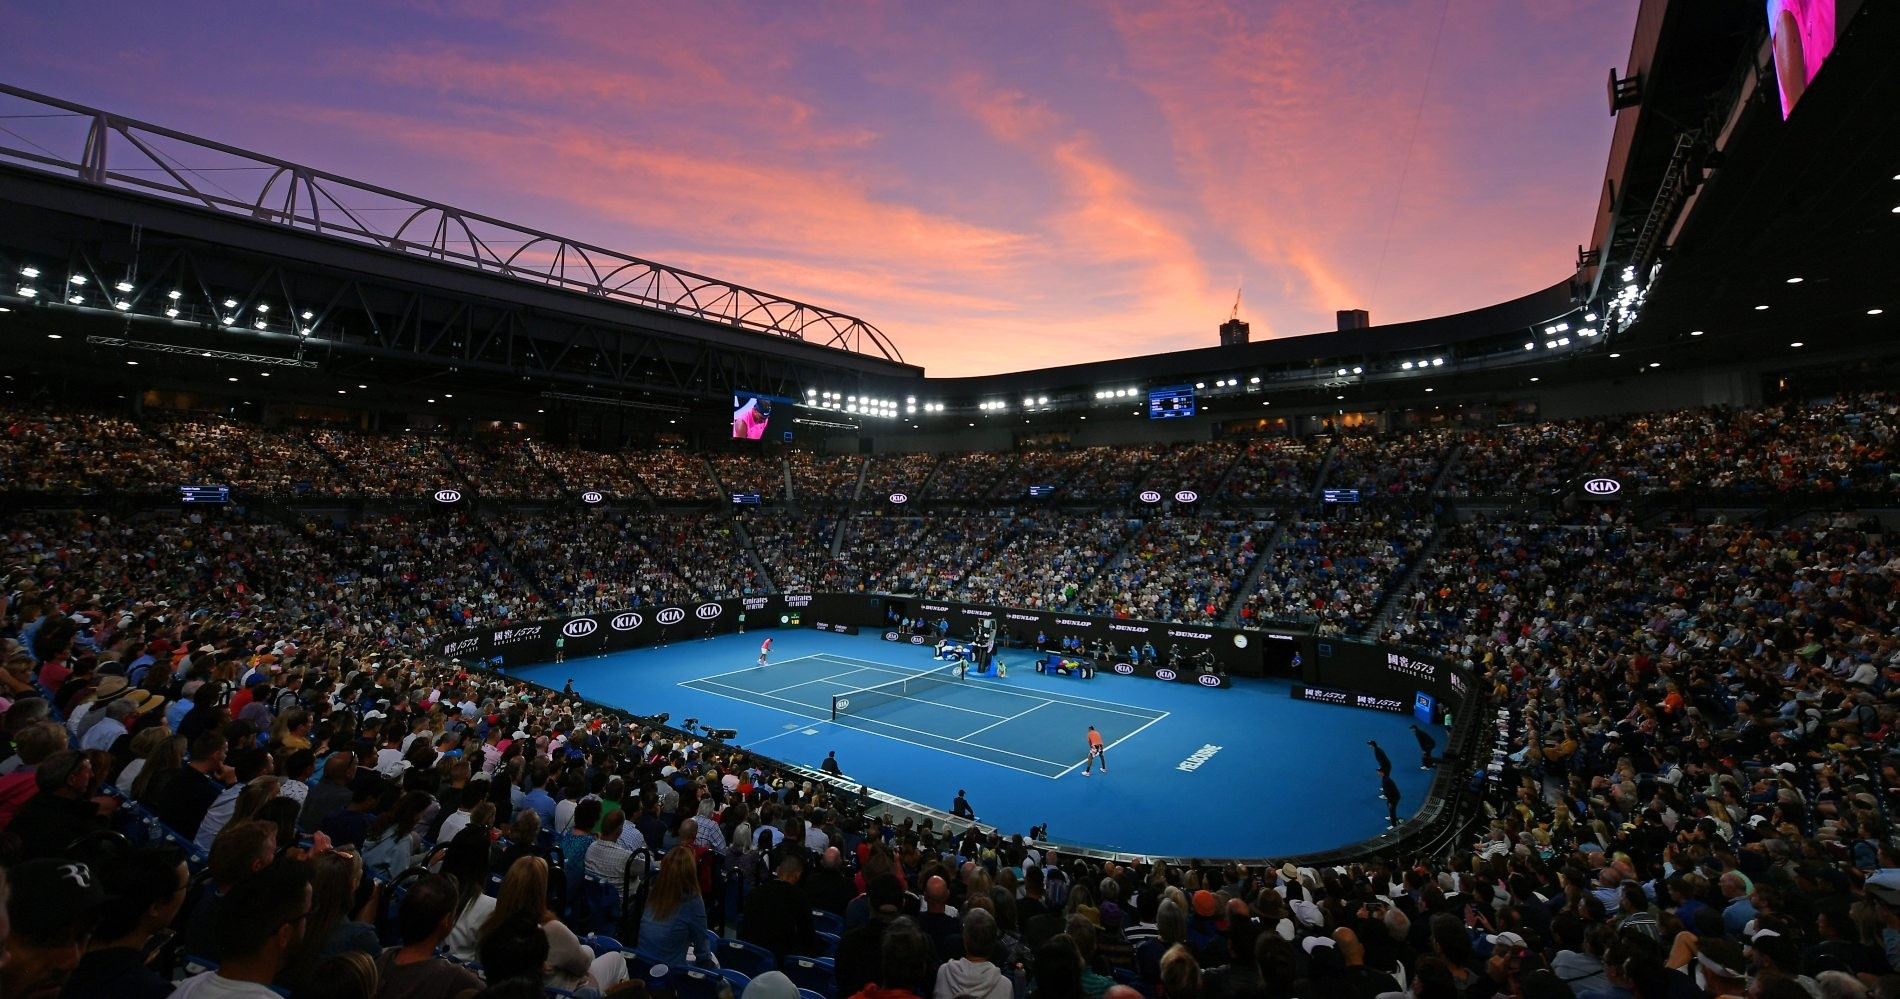 A view of the Rod Laver Arena at sunset